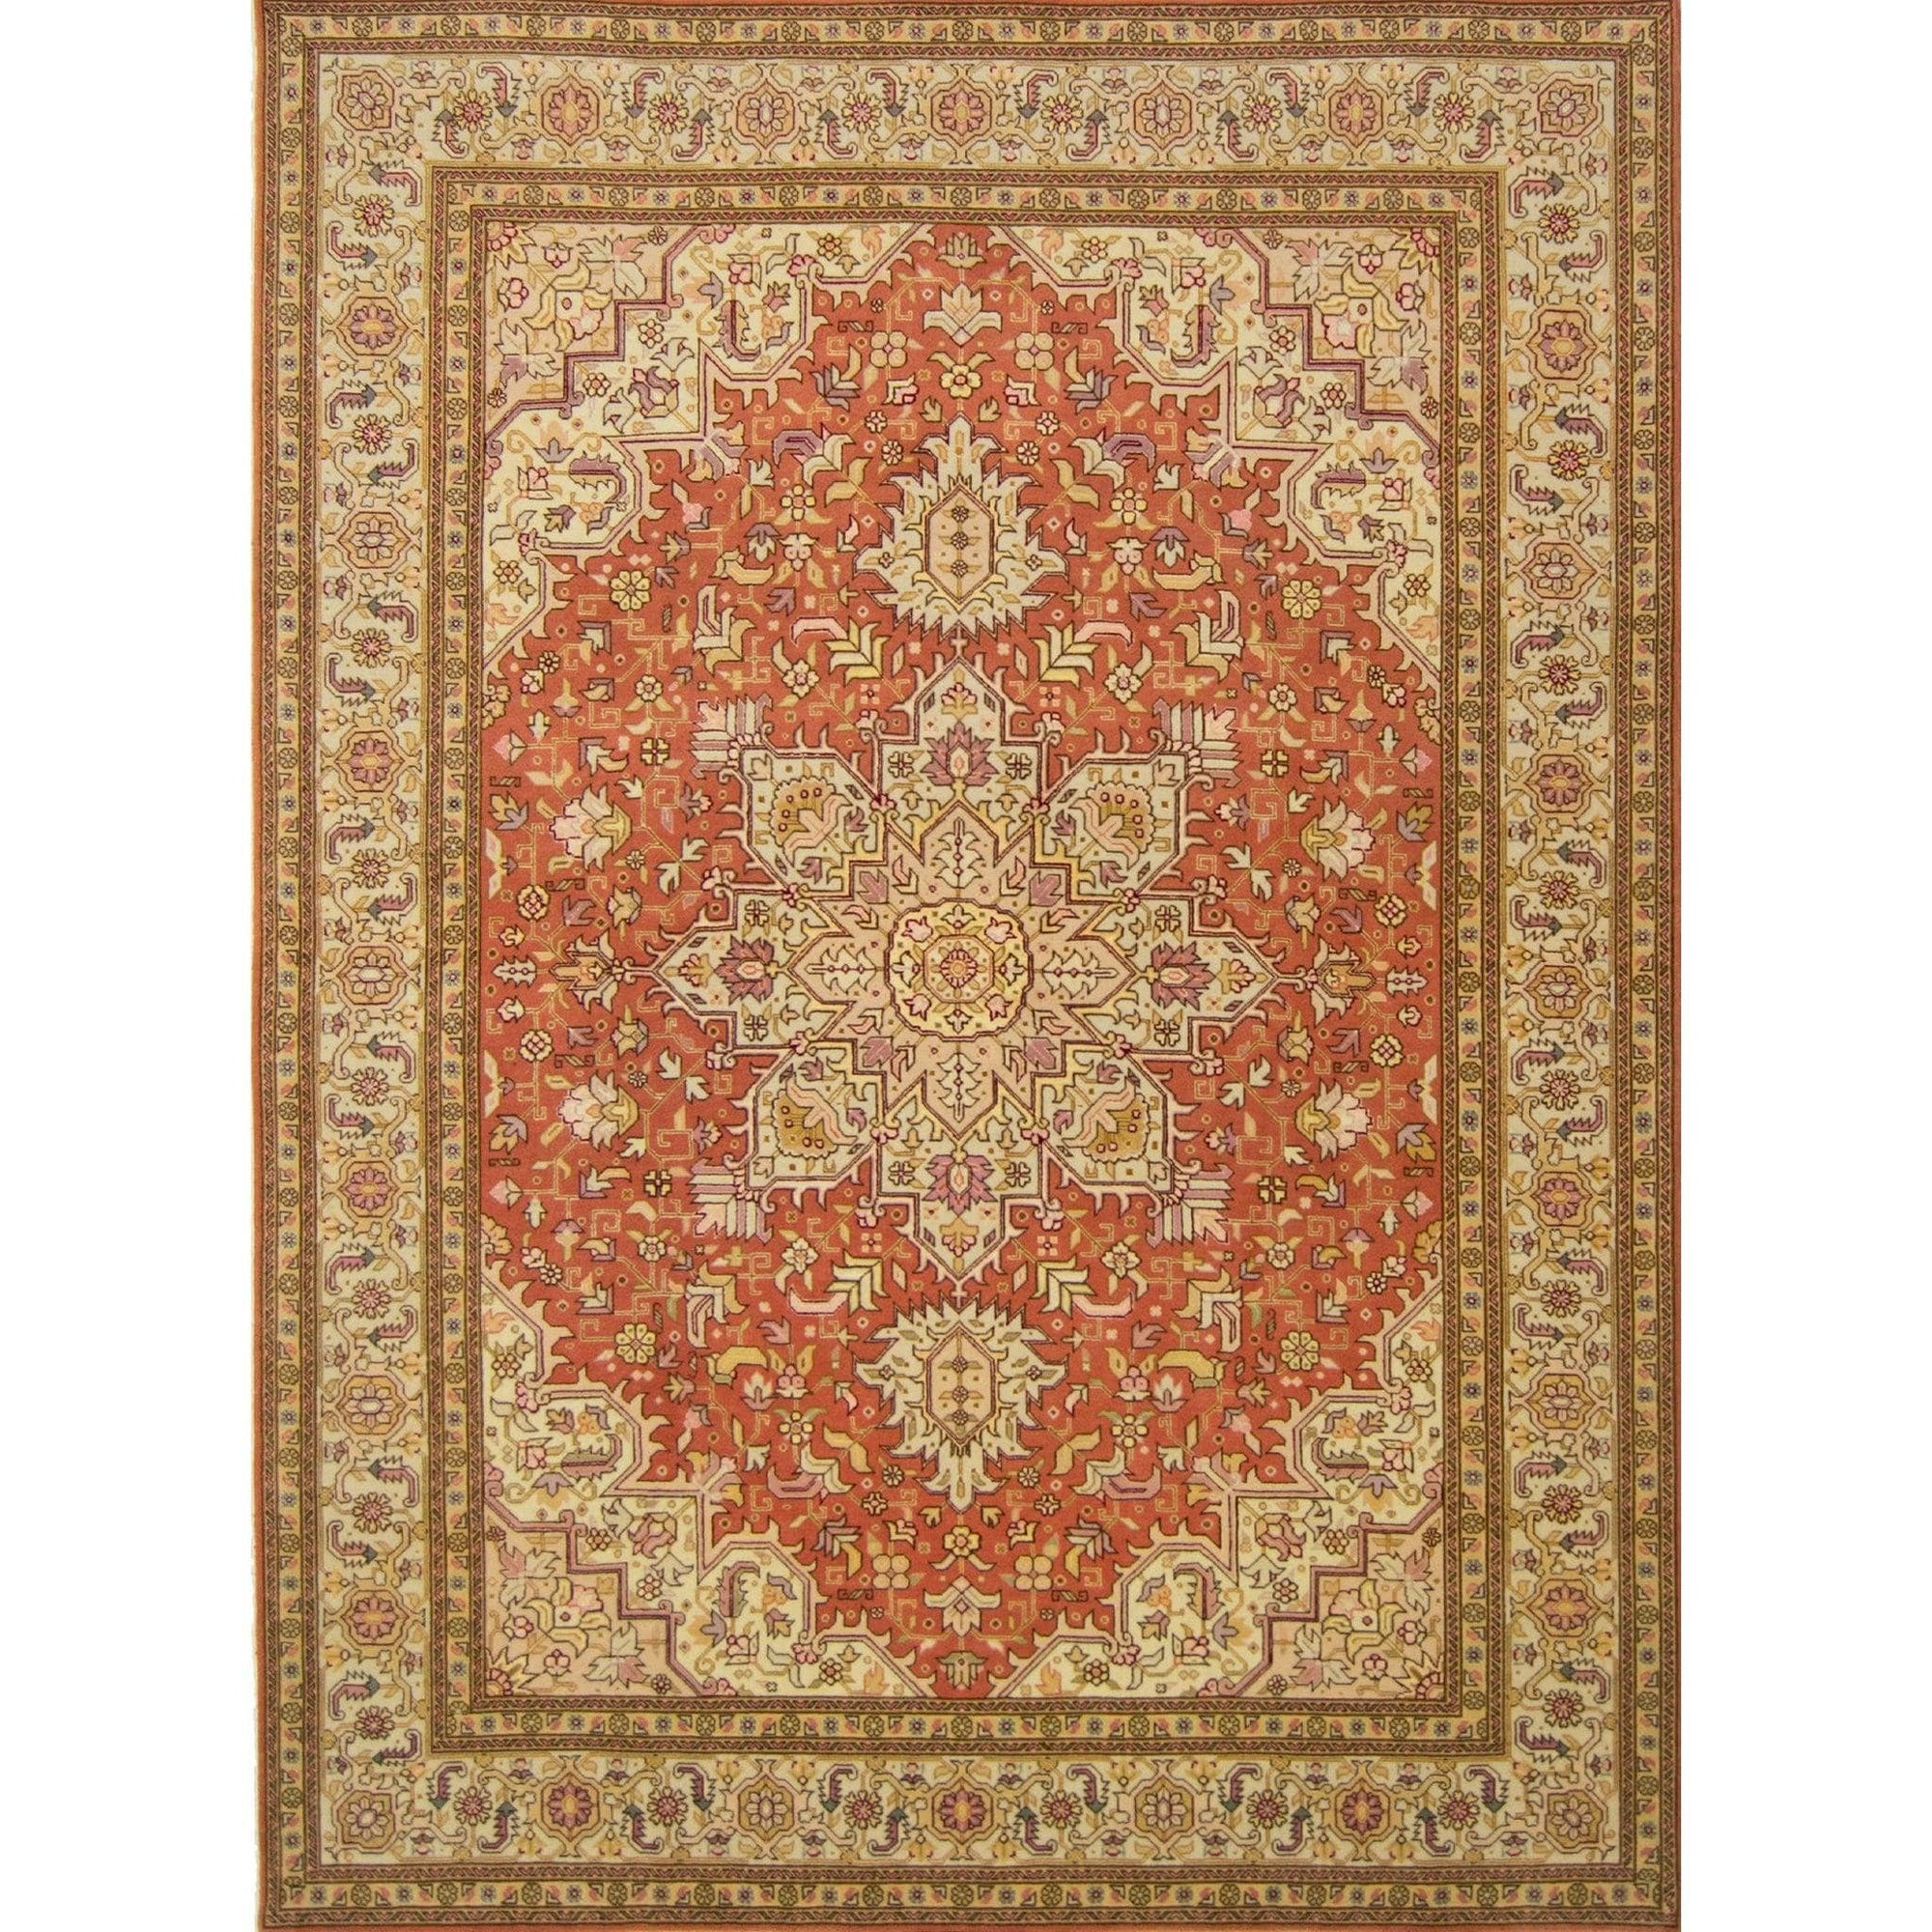 Super Fine  Hand-knotted Wool and Silk Tabriz Persian Rug 150cm x 210cm Persian-Rug | House-of-Haghi | NewMarket | Auckland | NZ | Handmade Persian Rugs | Hand Knotted Persian Rugs